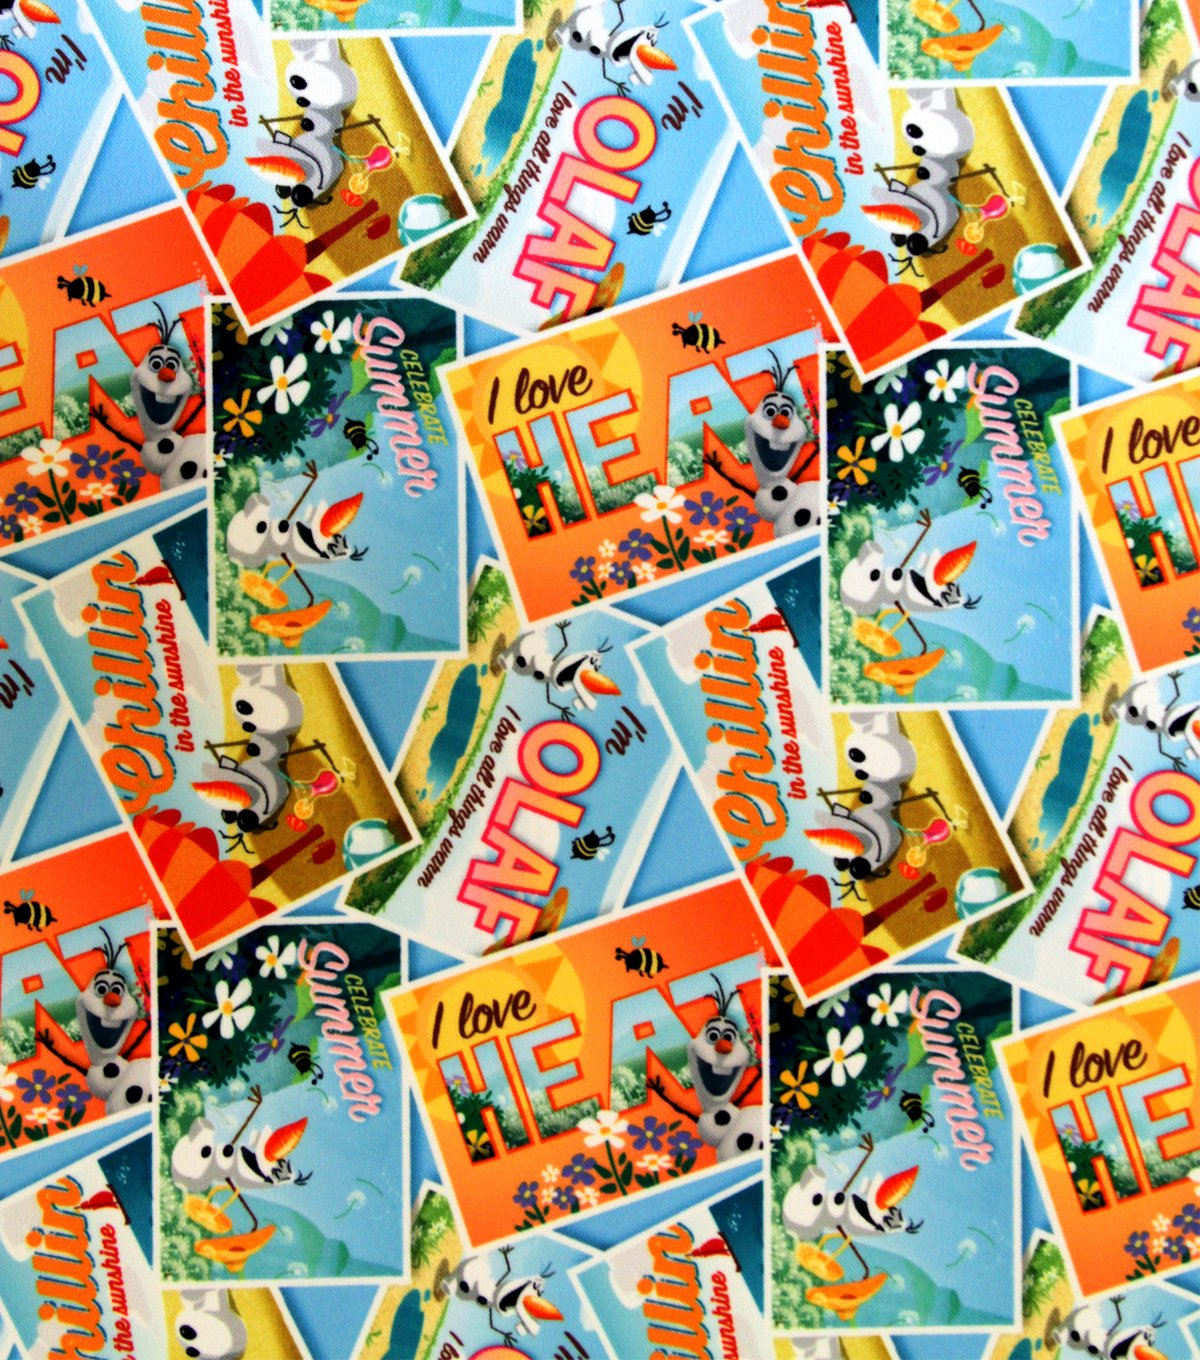 Disney Frozen Olaf Postcards Toss Twill Disney Officially Licensed Great for Quilting, Sewing, Craft Projects, Quilt, Throw Pillows /& Mo 1 Yard 1 Yard X 60